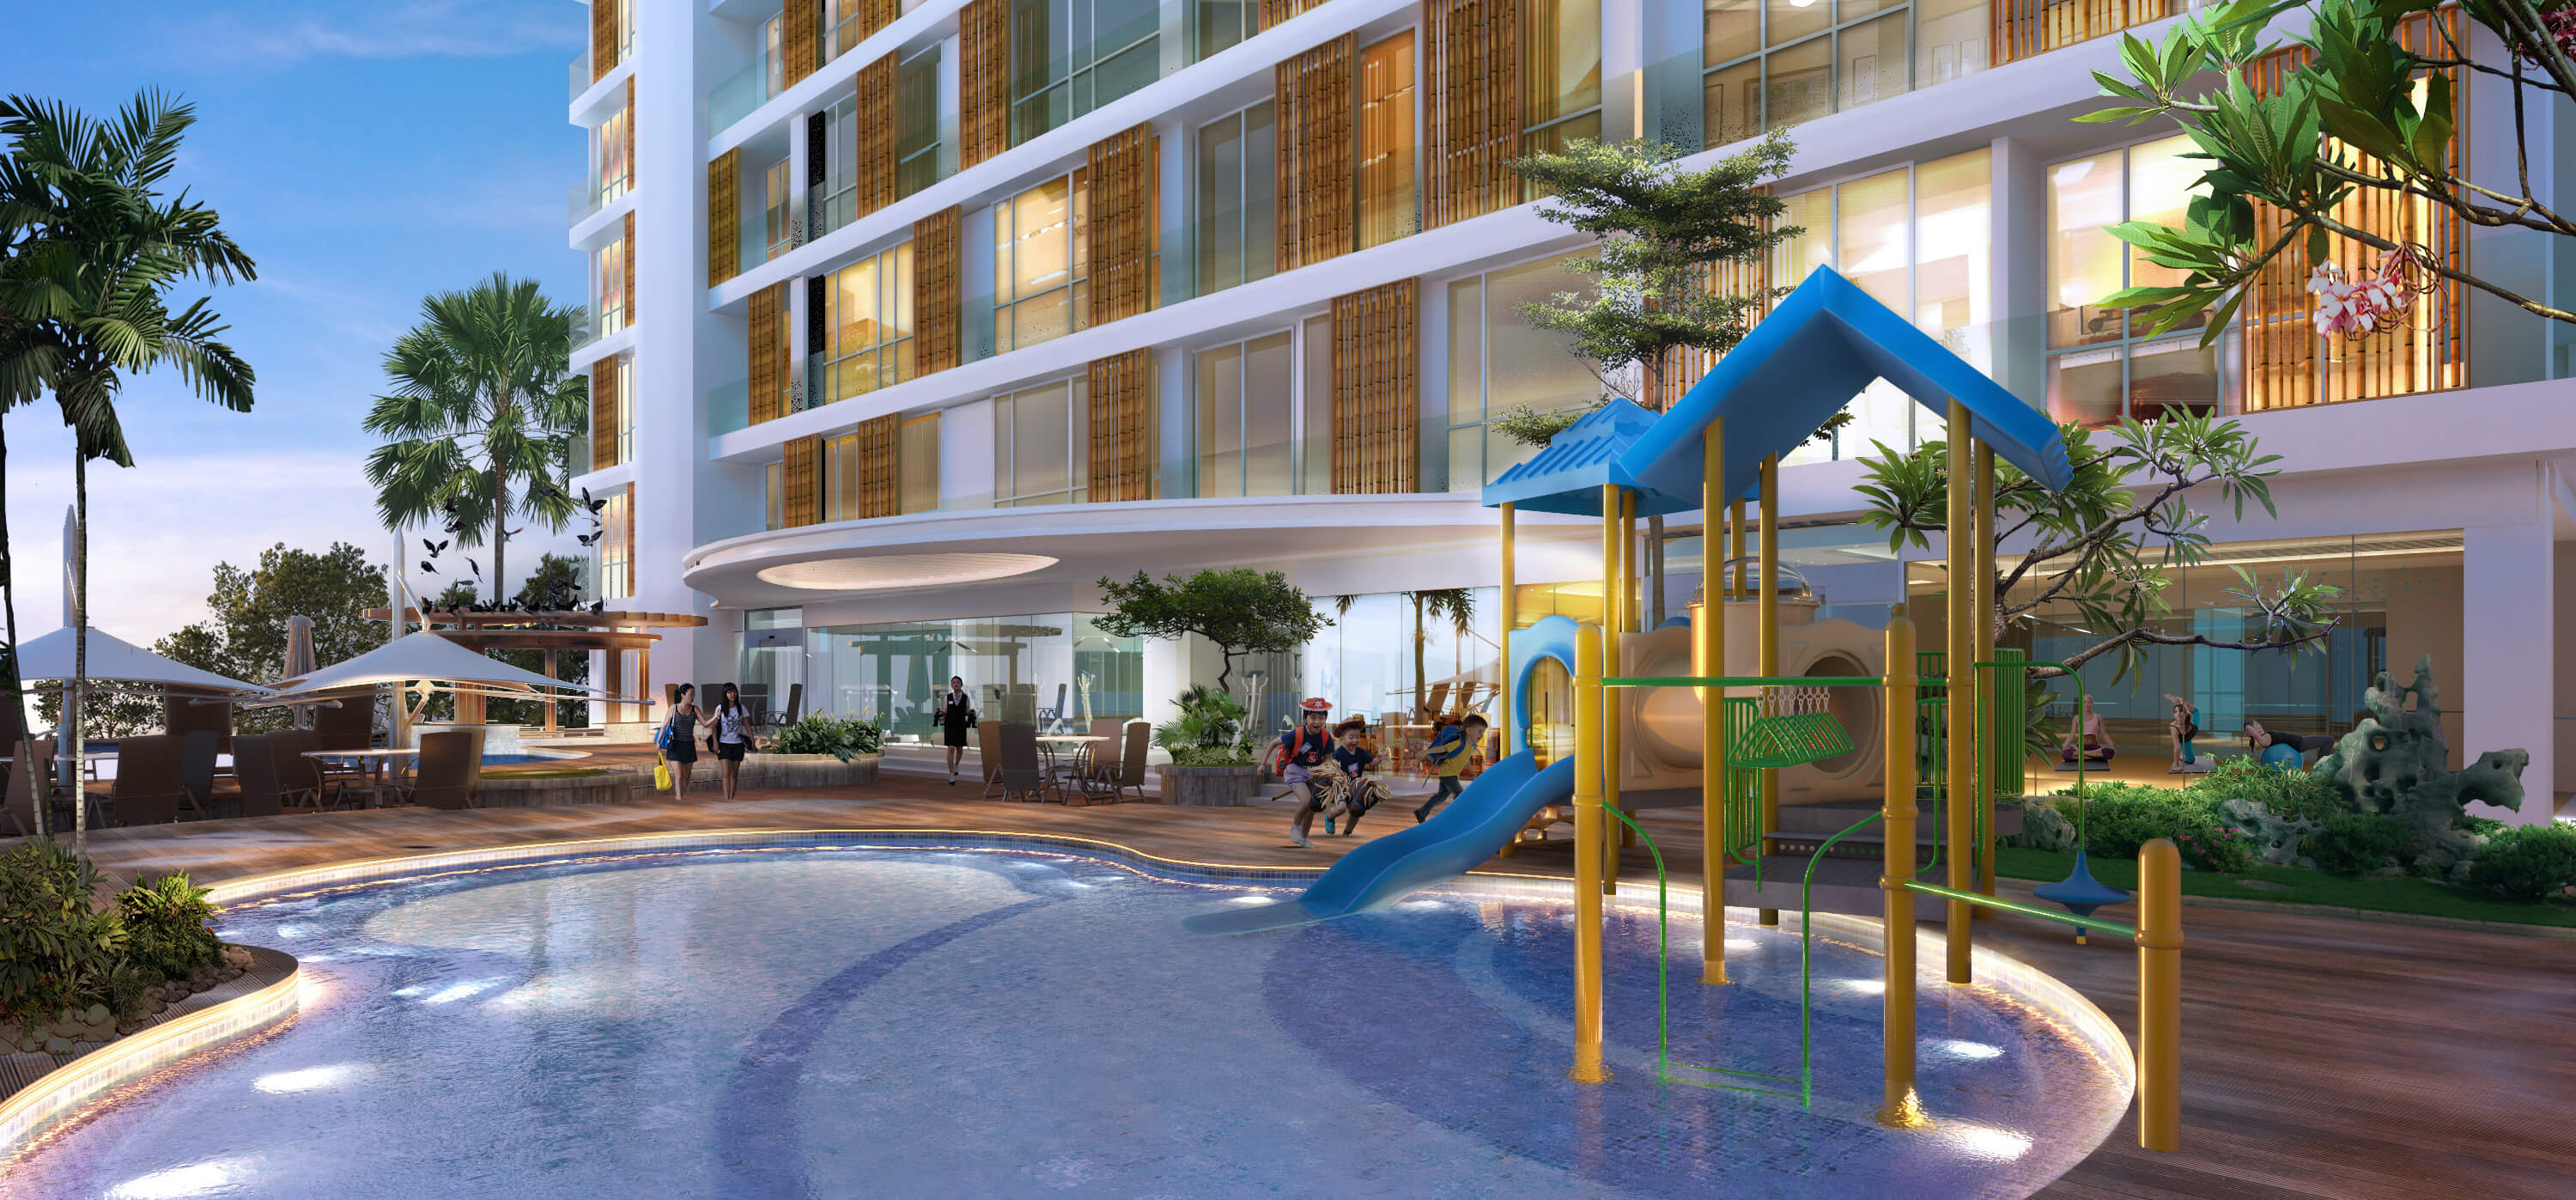 Norrington Suites Facilities Swimming Pool Kids Yoga Space